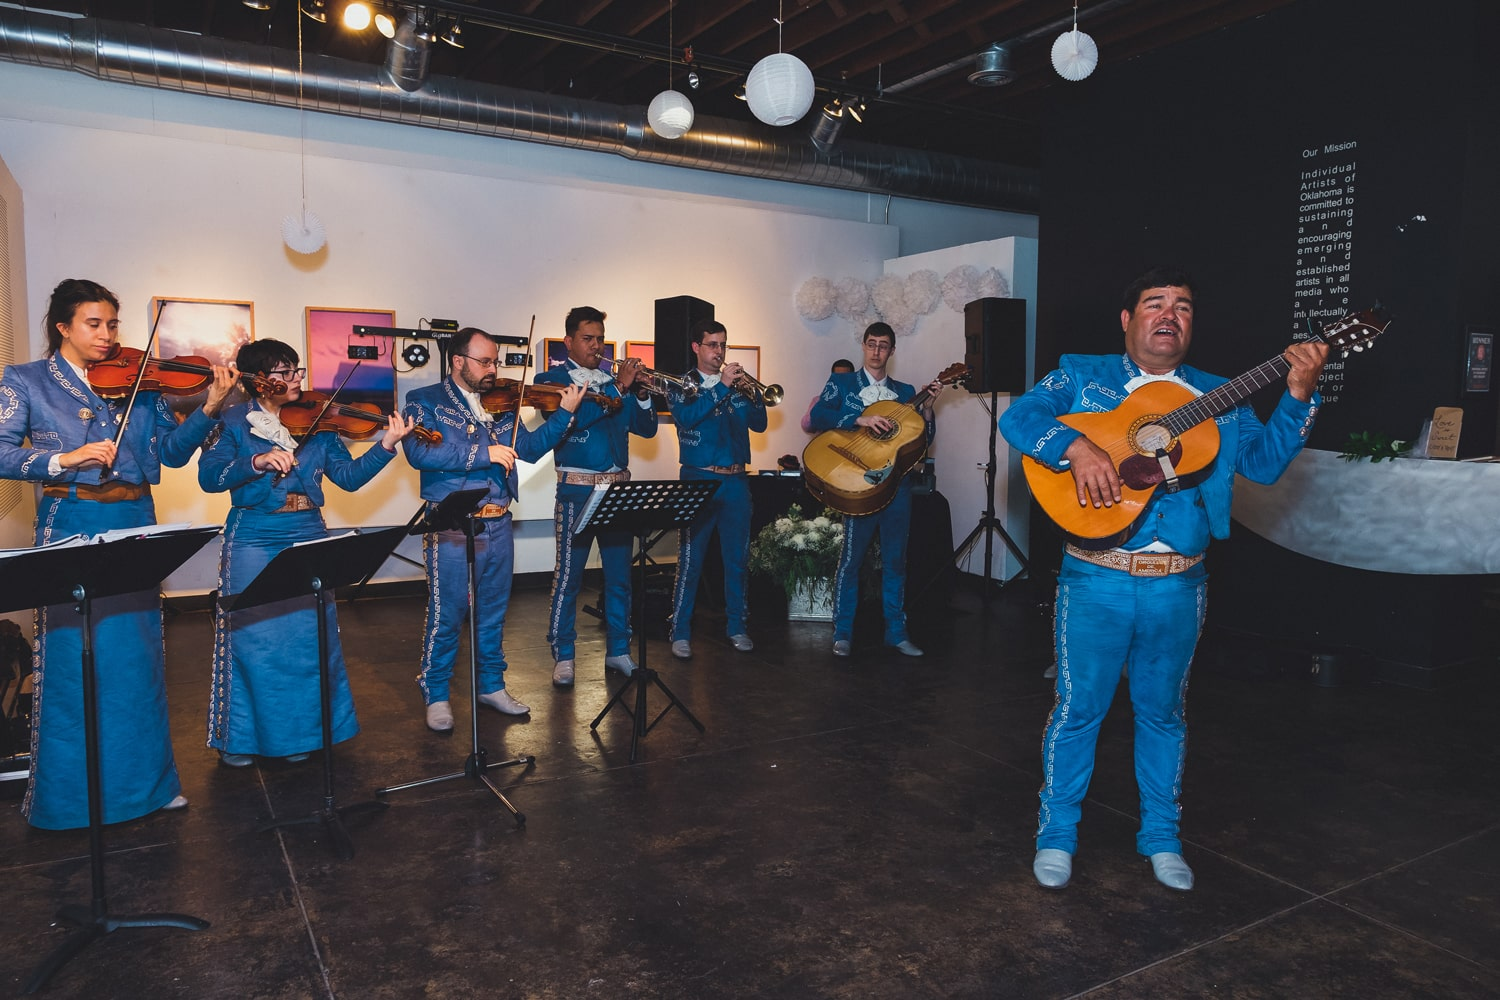 Mariachi Orgullo de America at IAO Gallery wedding in Oklahoma City // Photo by Leia Smethurst Photography